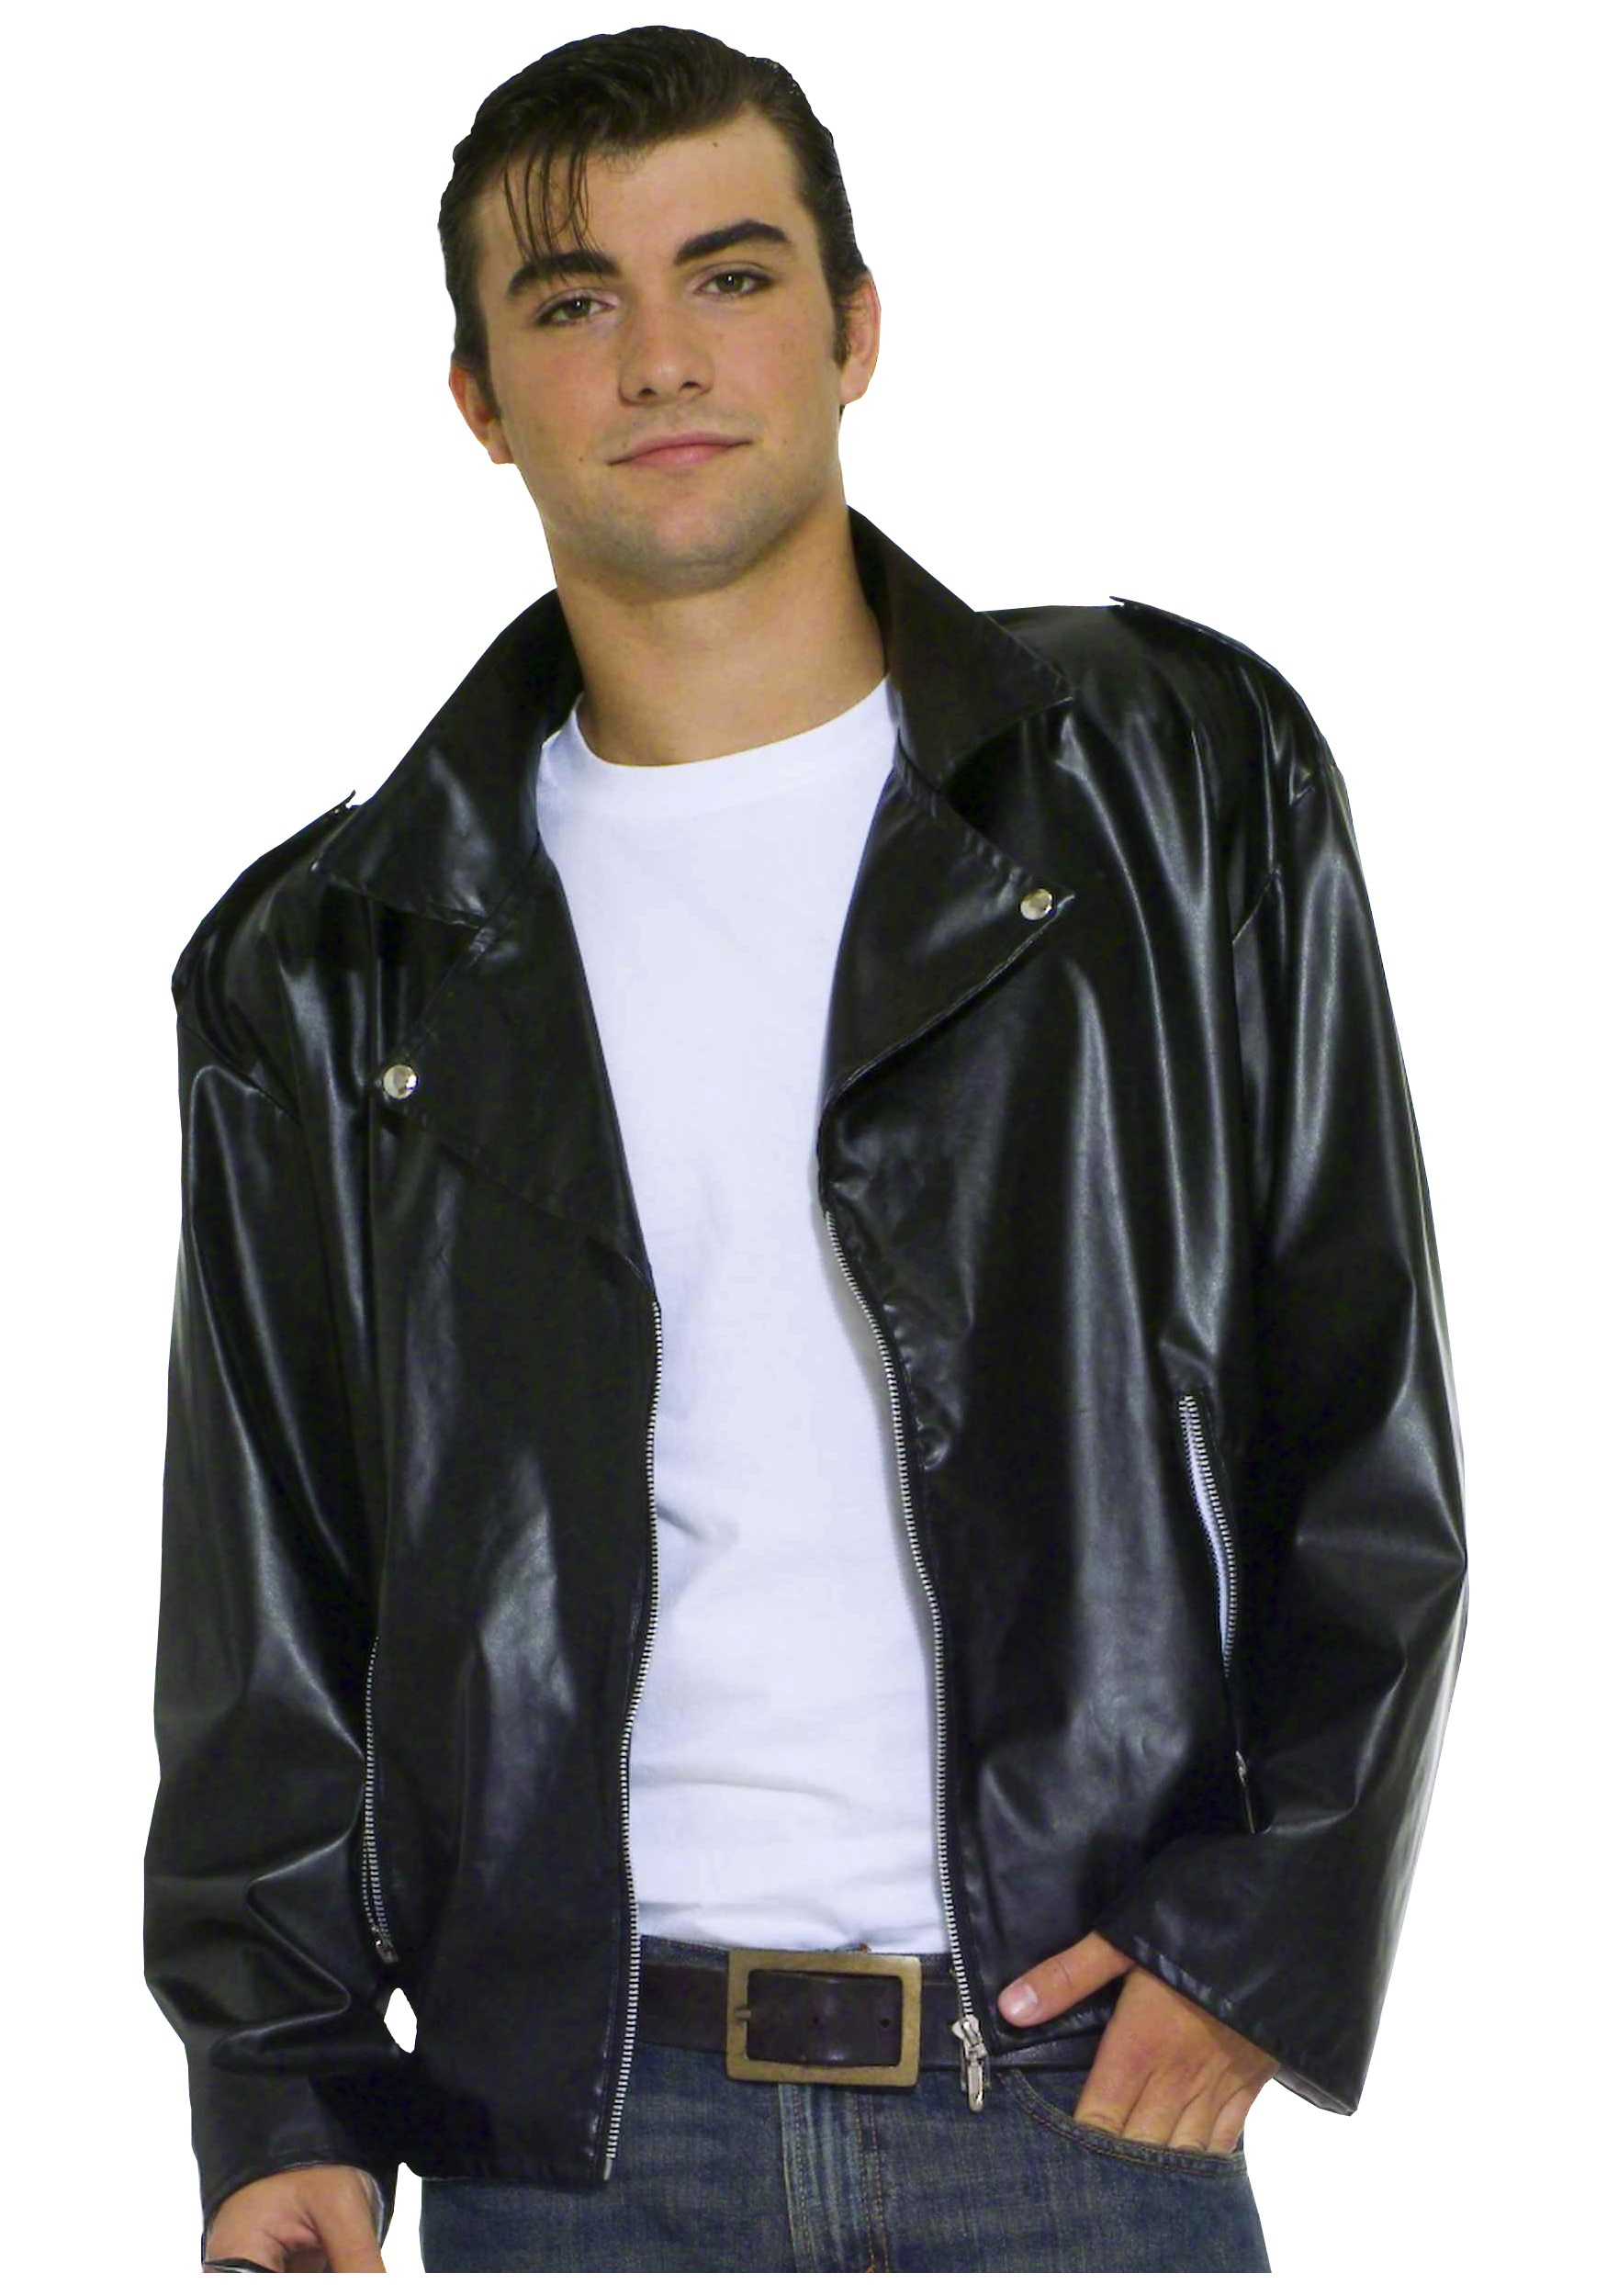 Greaser Plus Size Costume Jacket  sc 1 st  Halloween Costume & Greaser Plus Size Costume Jacket - Mens Fifties Grease Costumes